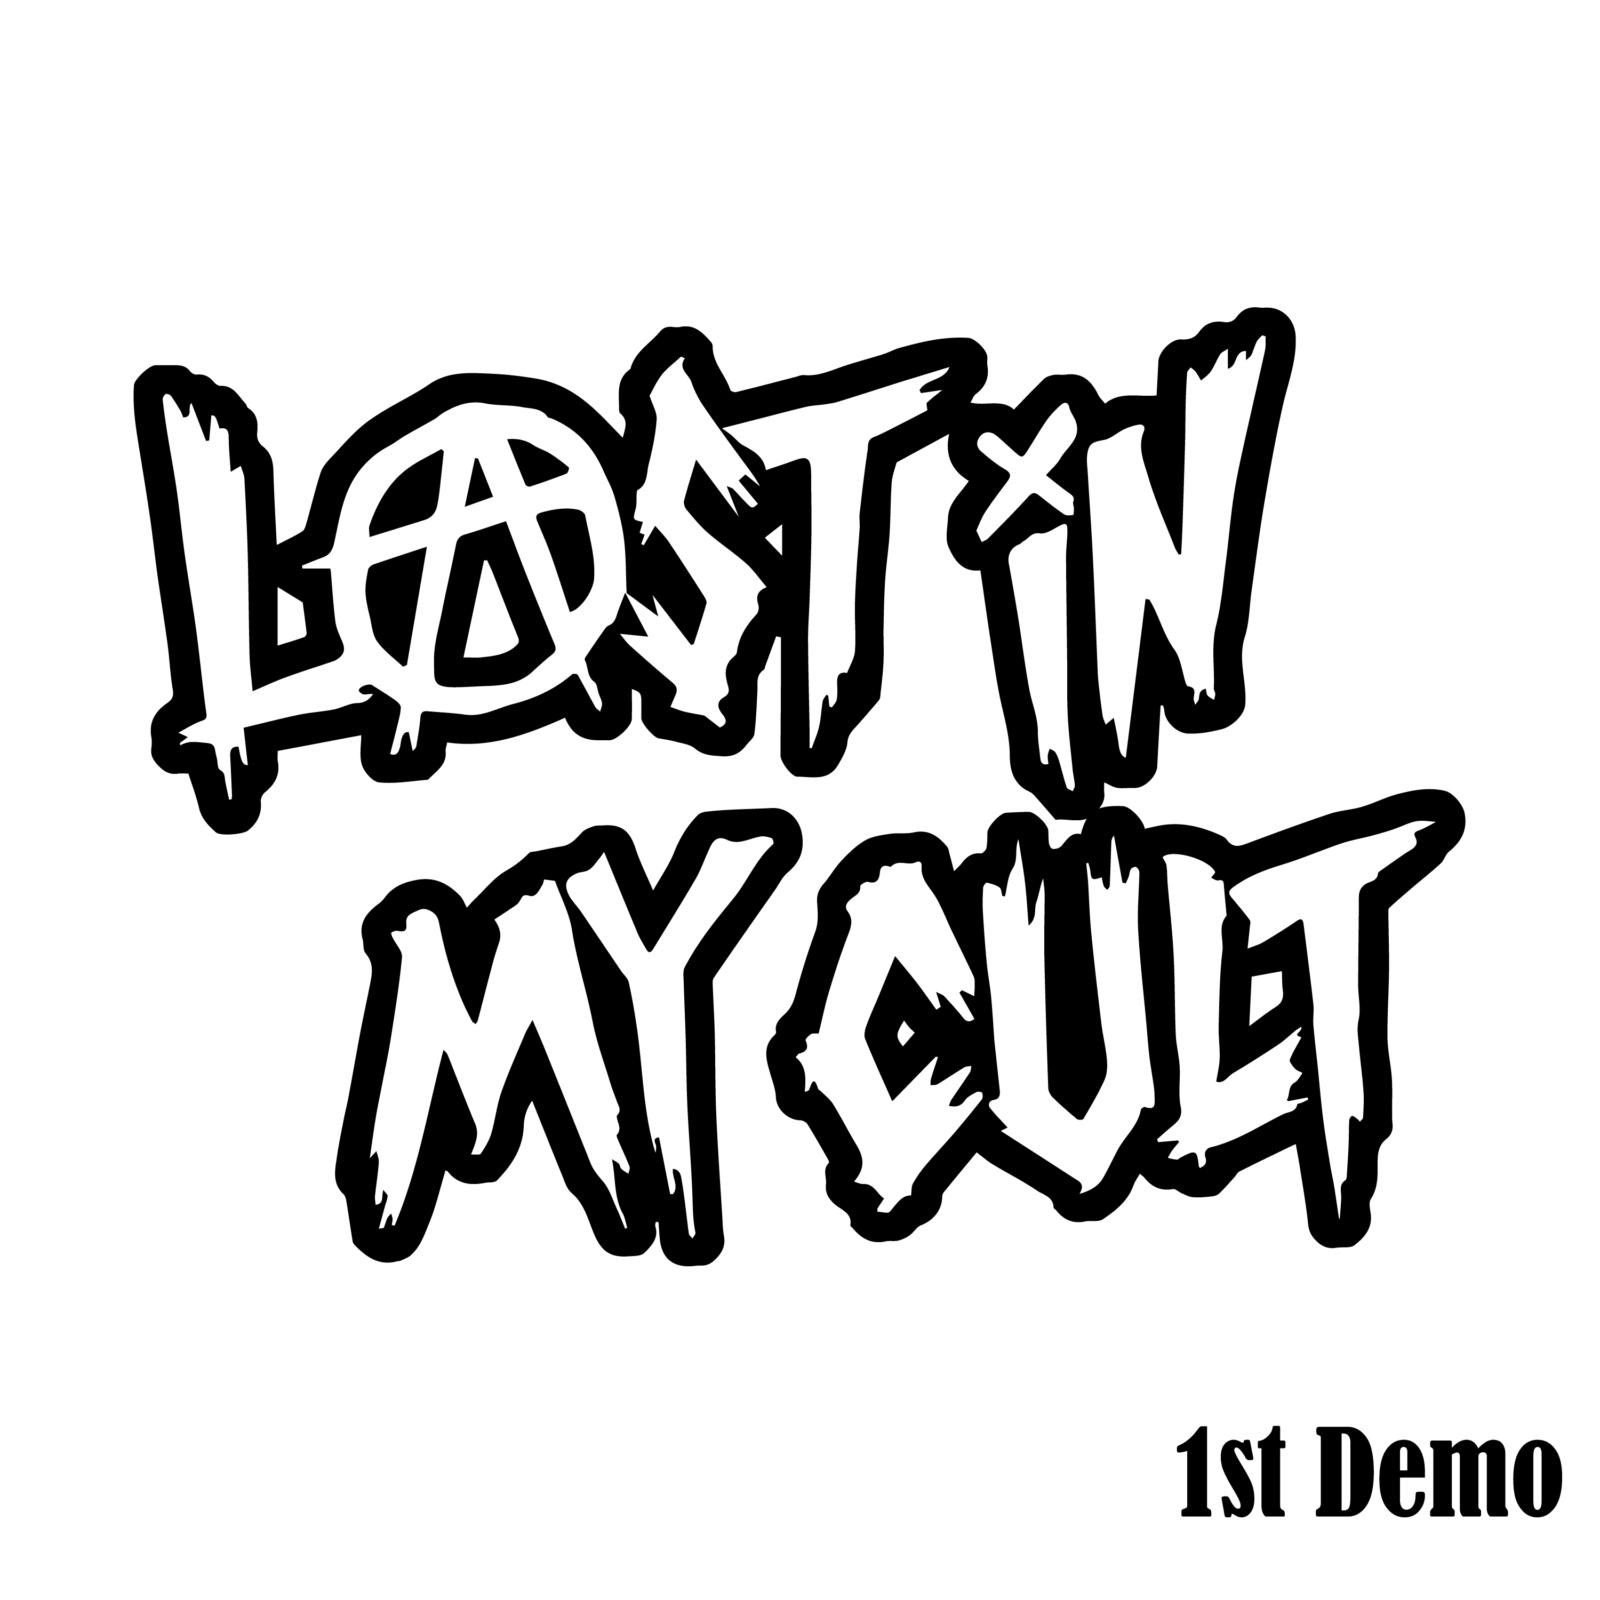 LAST IN MY CULT – 1st Demo [Ototoy FLAC 24bit/48kHz]